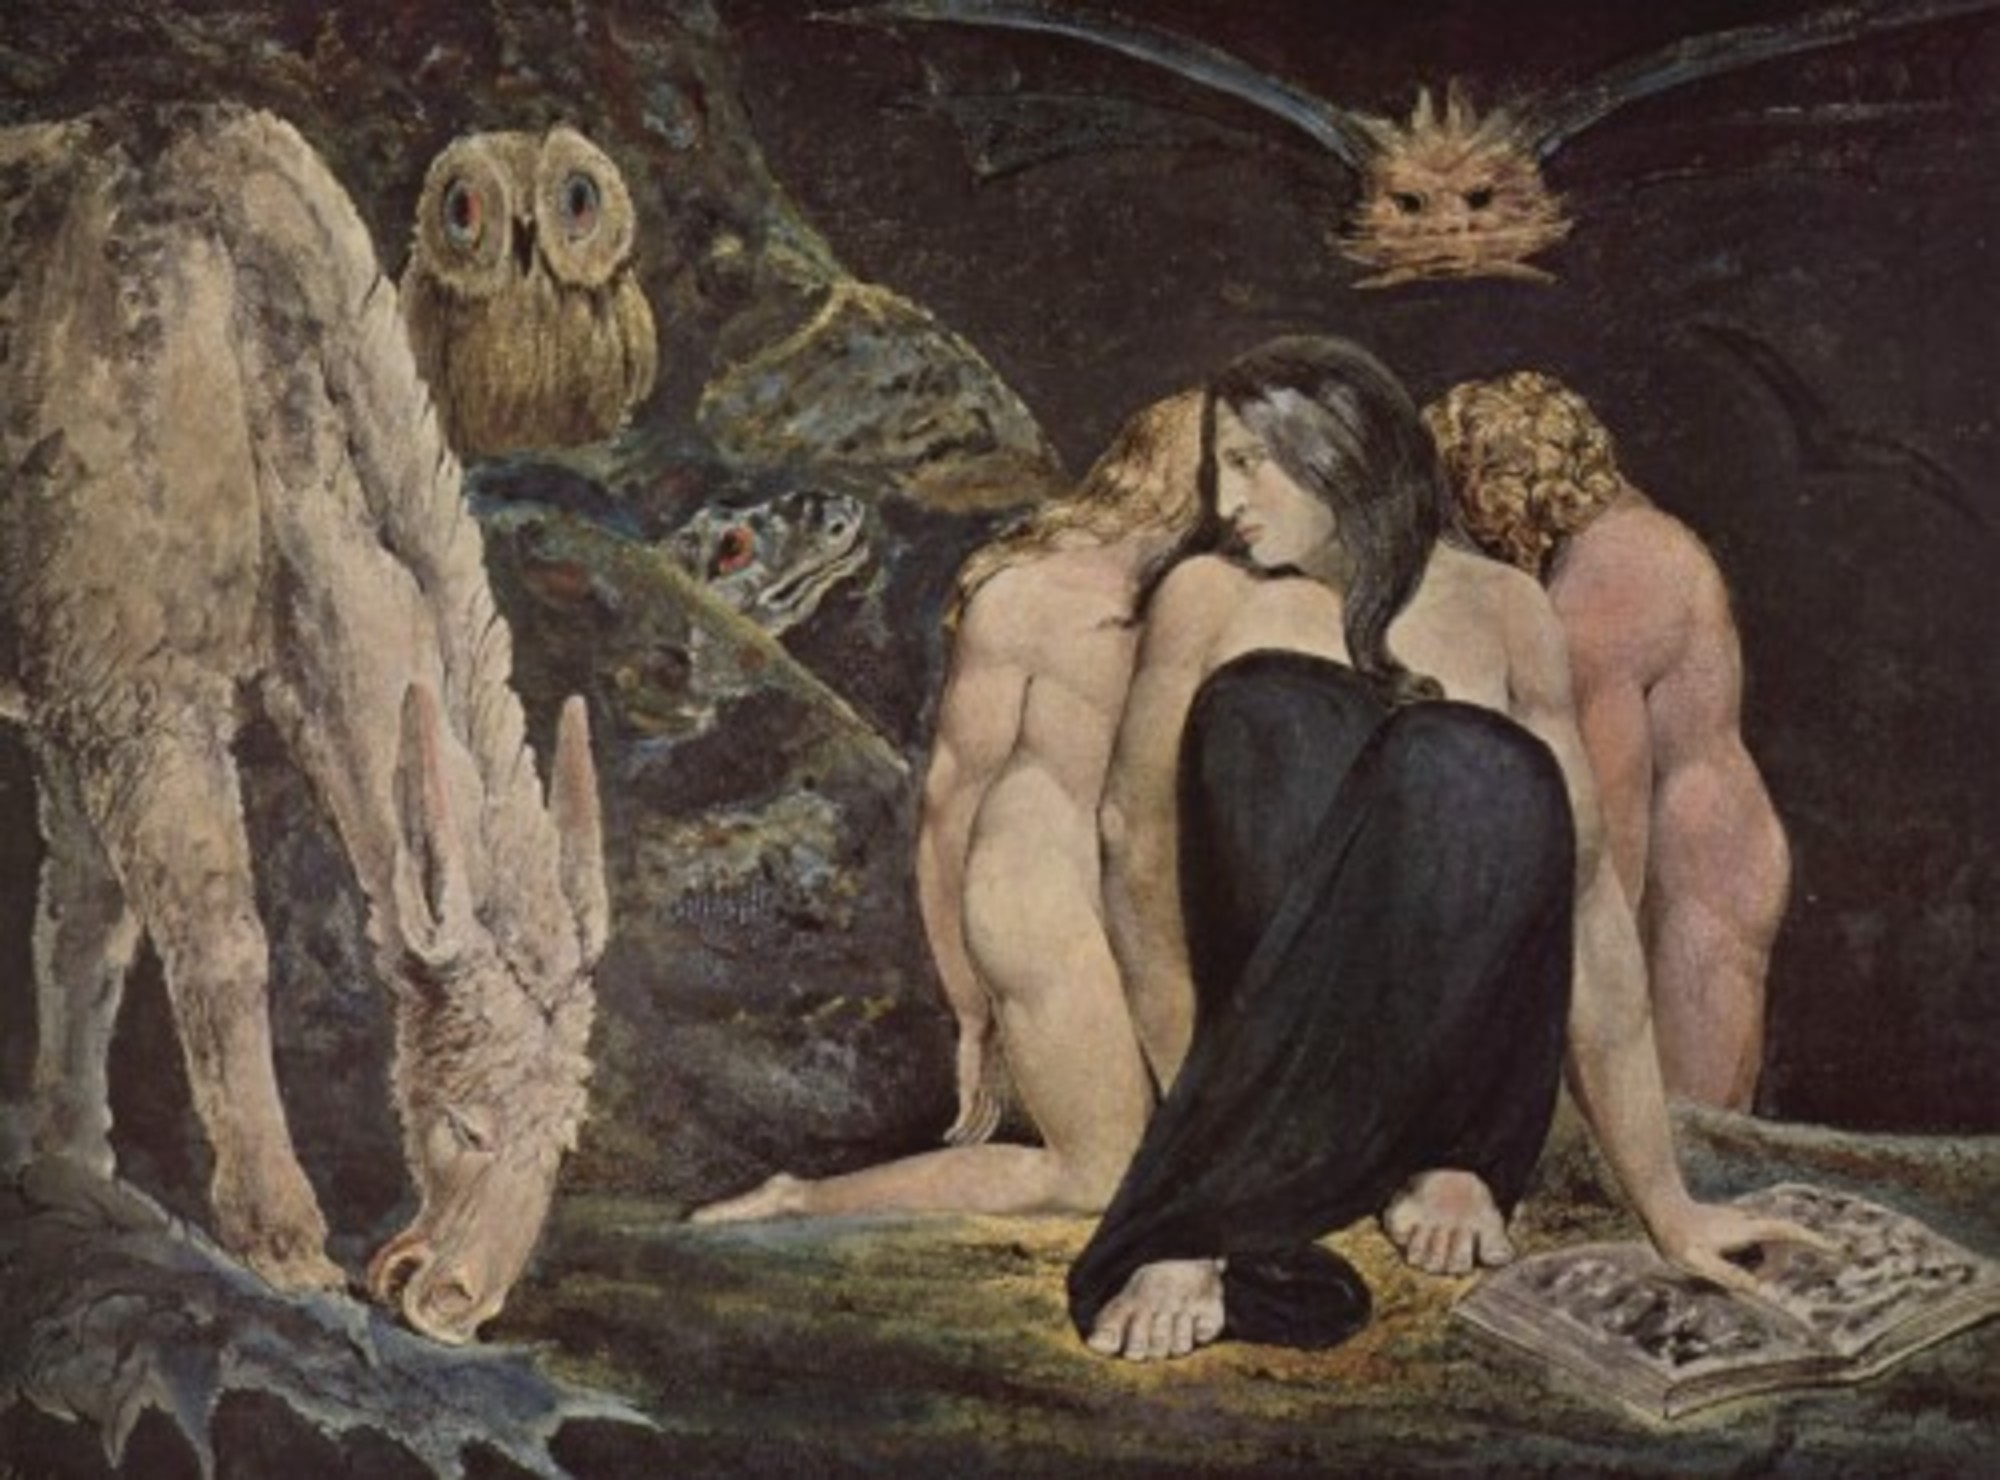 William_Blake_006.jpg